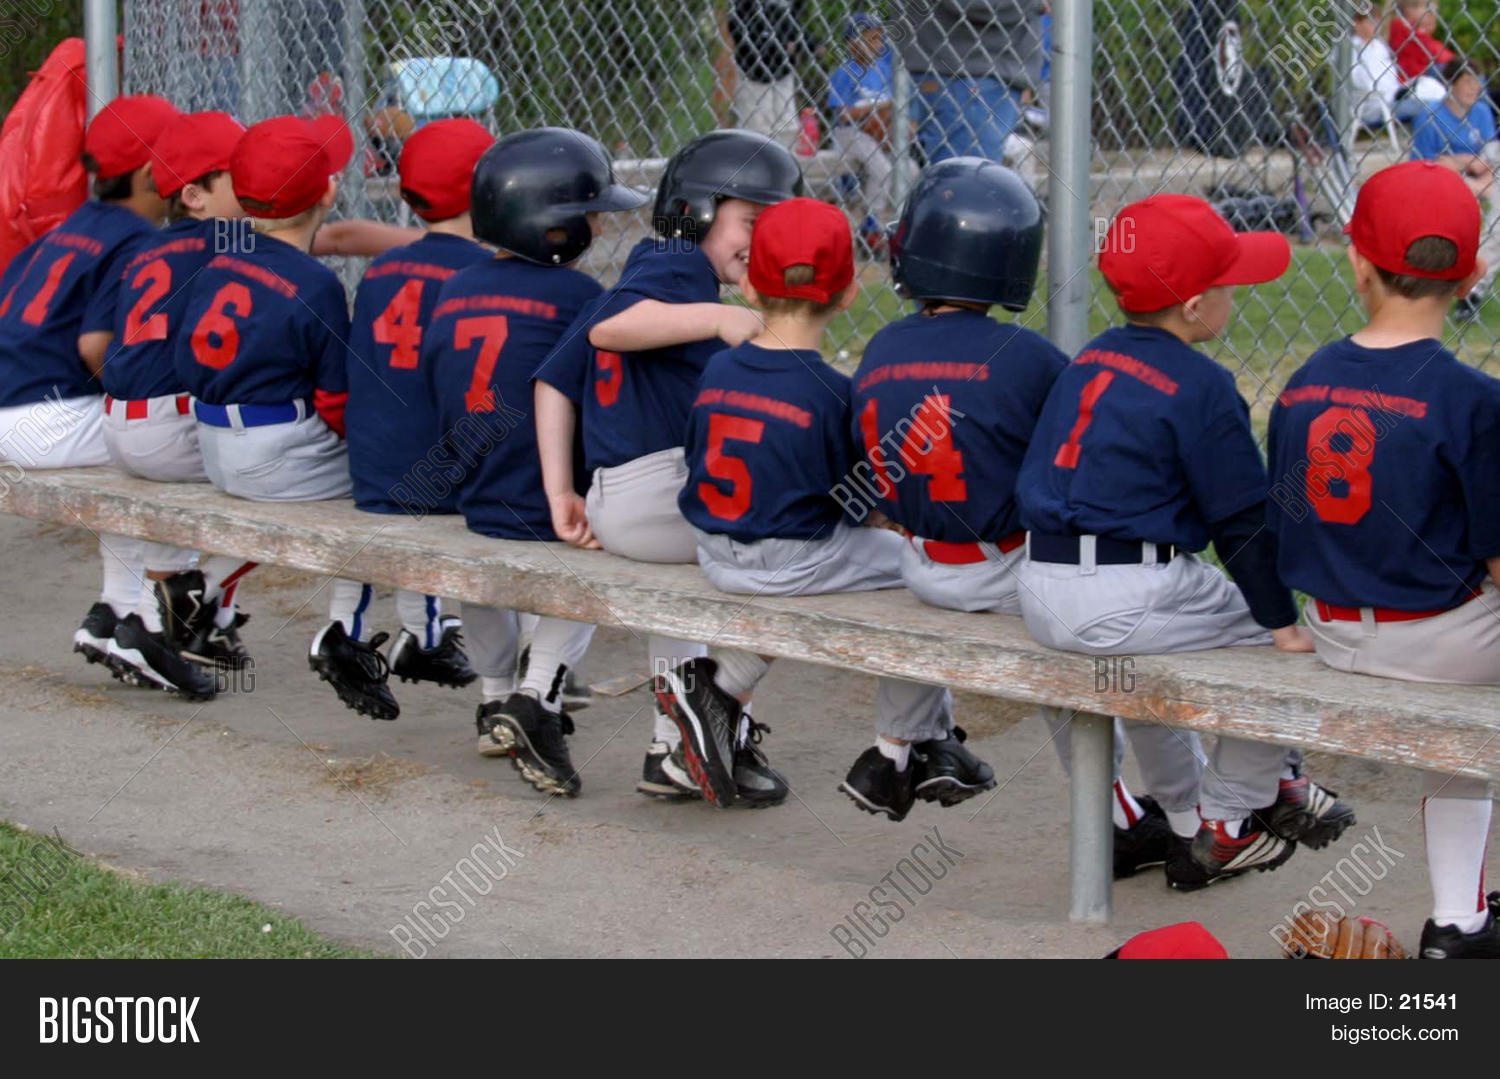 manager on cbn network coach to a hale blue always is for lookout toronto club the articles canadian baseball jays left like demarlo bench second